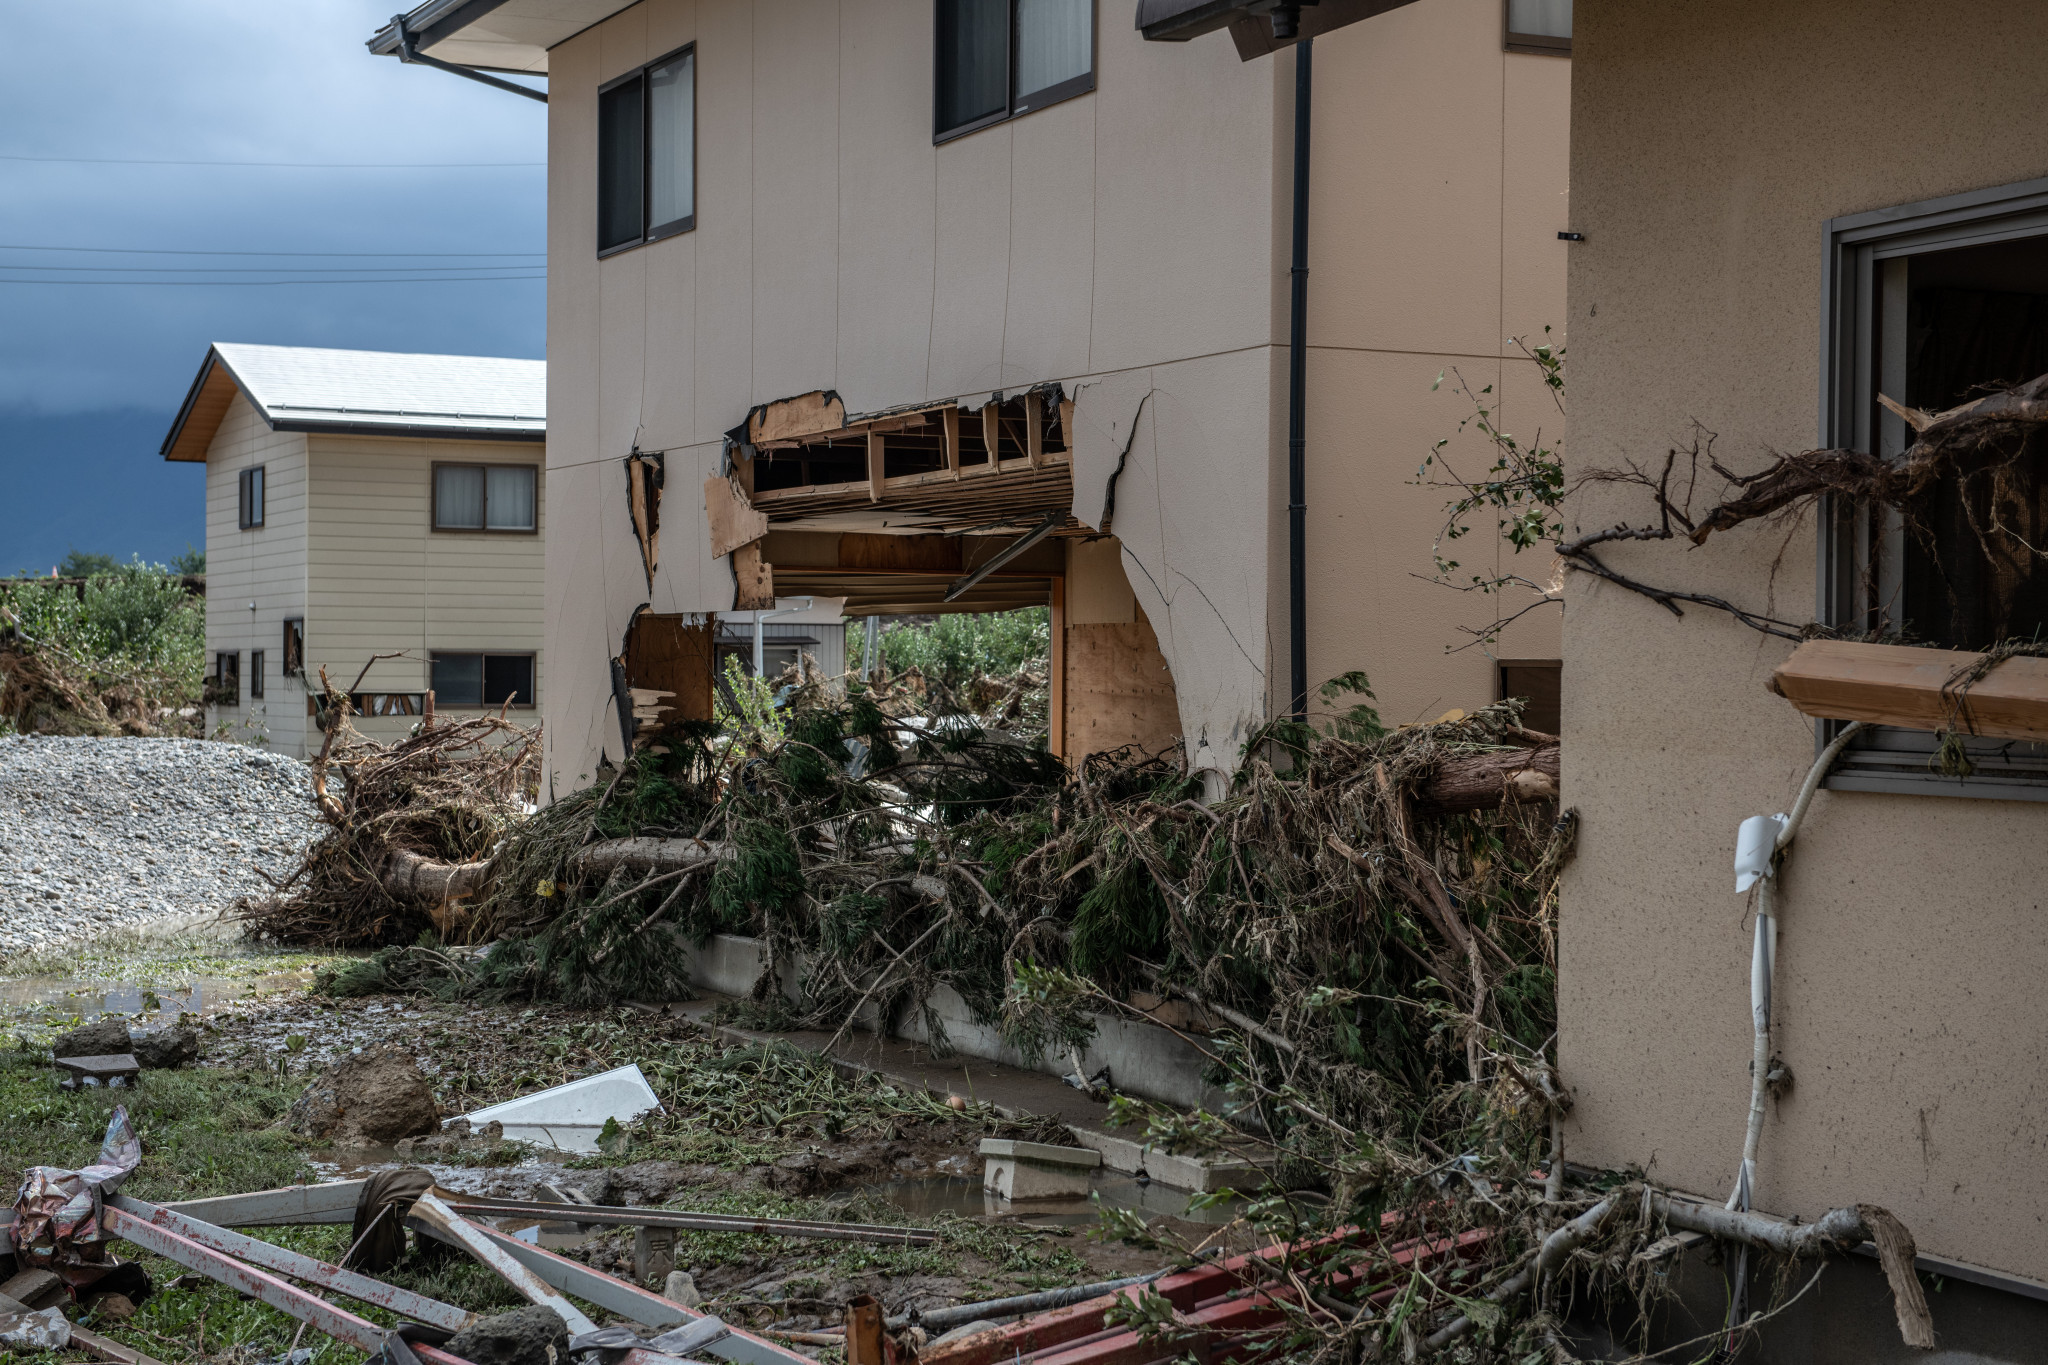 Typhoon Hagibis caused widespread destruction in Japan, including the death of nearly 90 people ©Getty Images